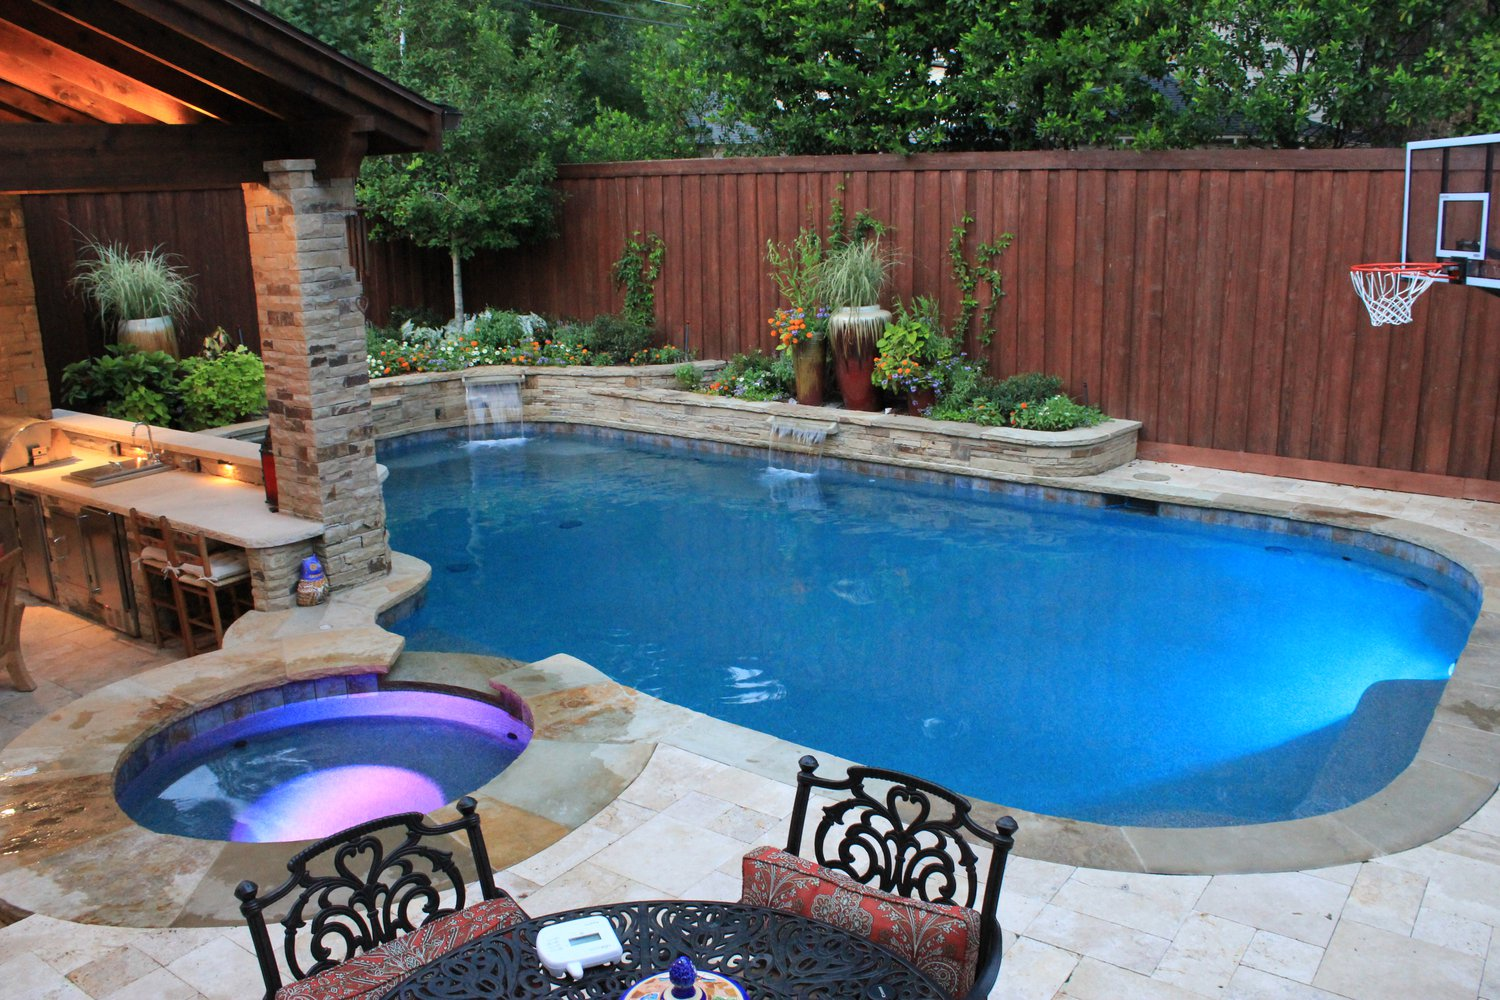 Remodel Your Pool Or Build A New Pool Today For Maximum ... on Backyard Redesign Ideas id=53519